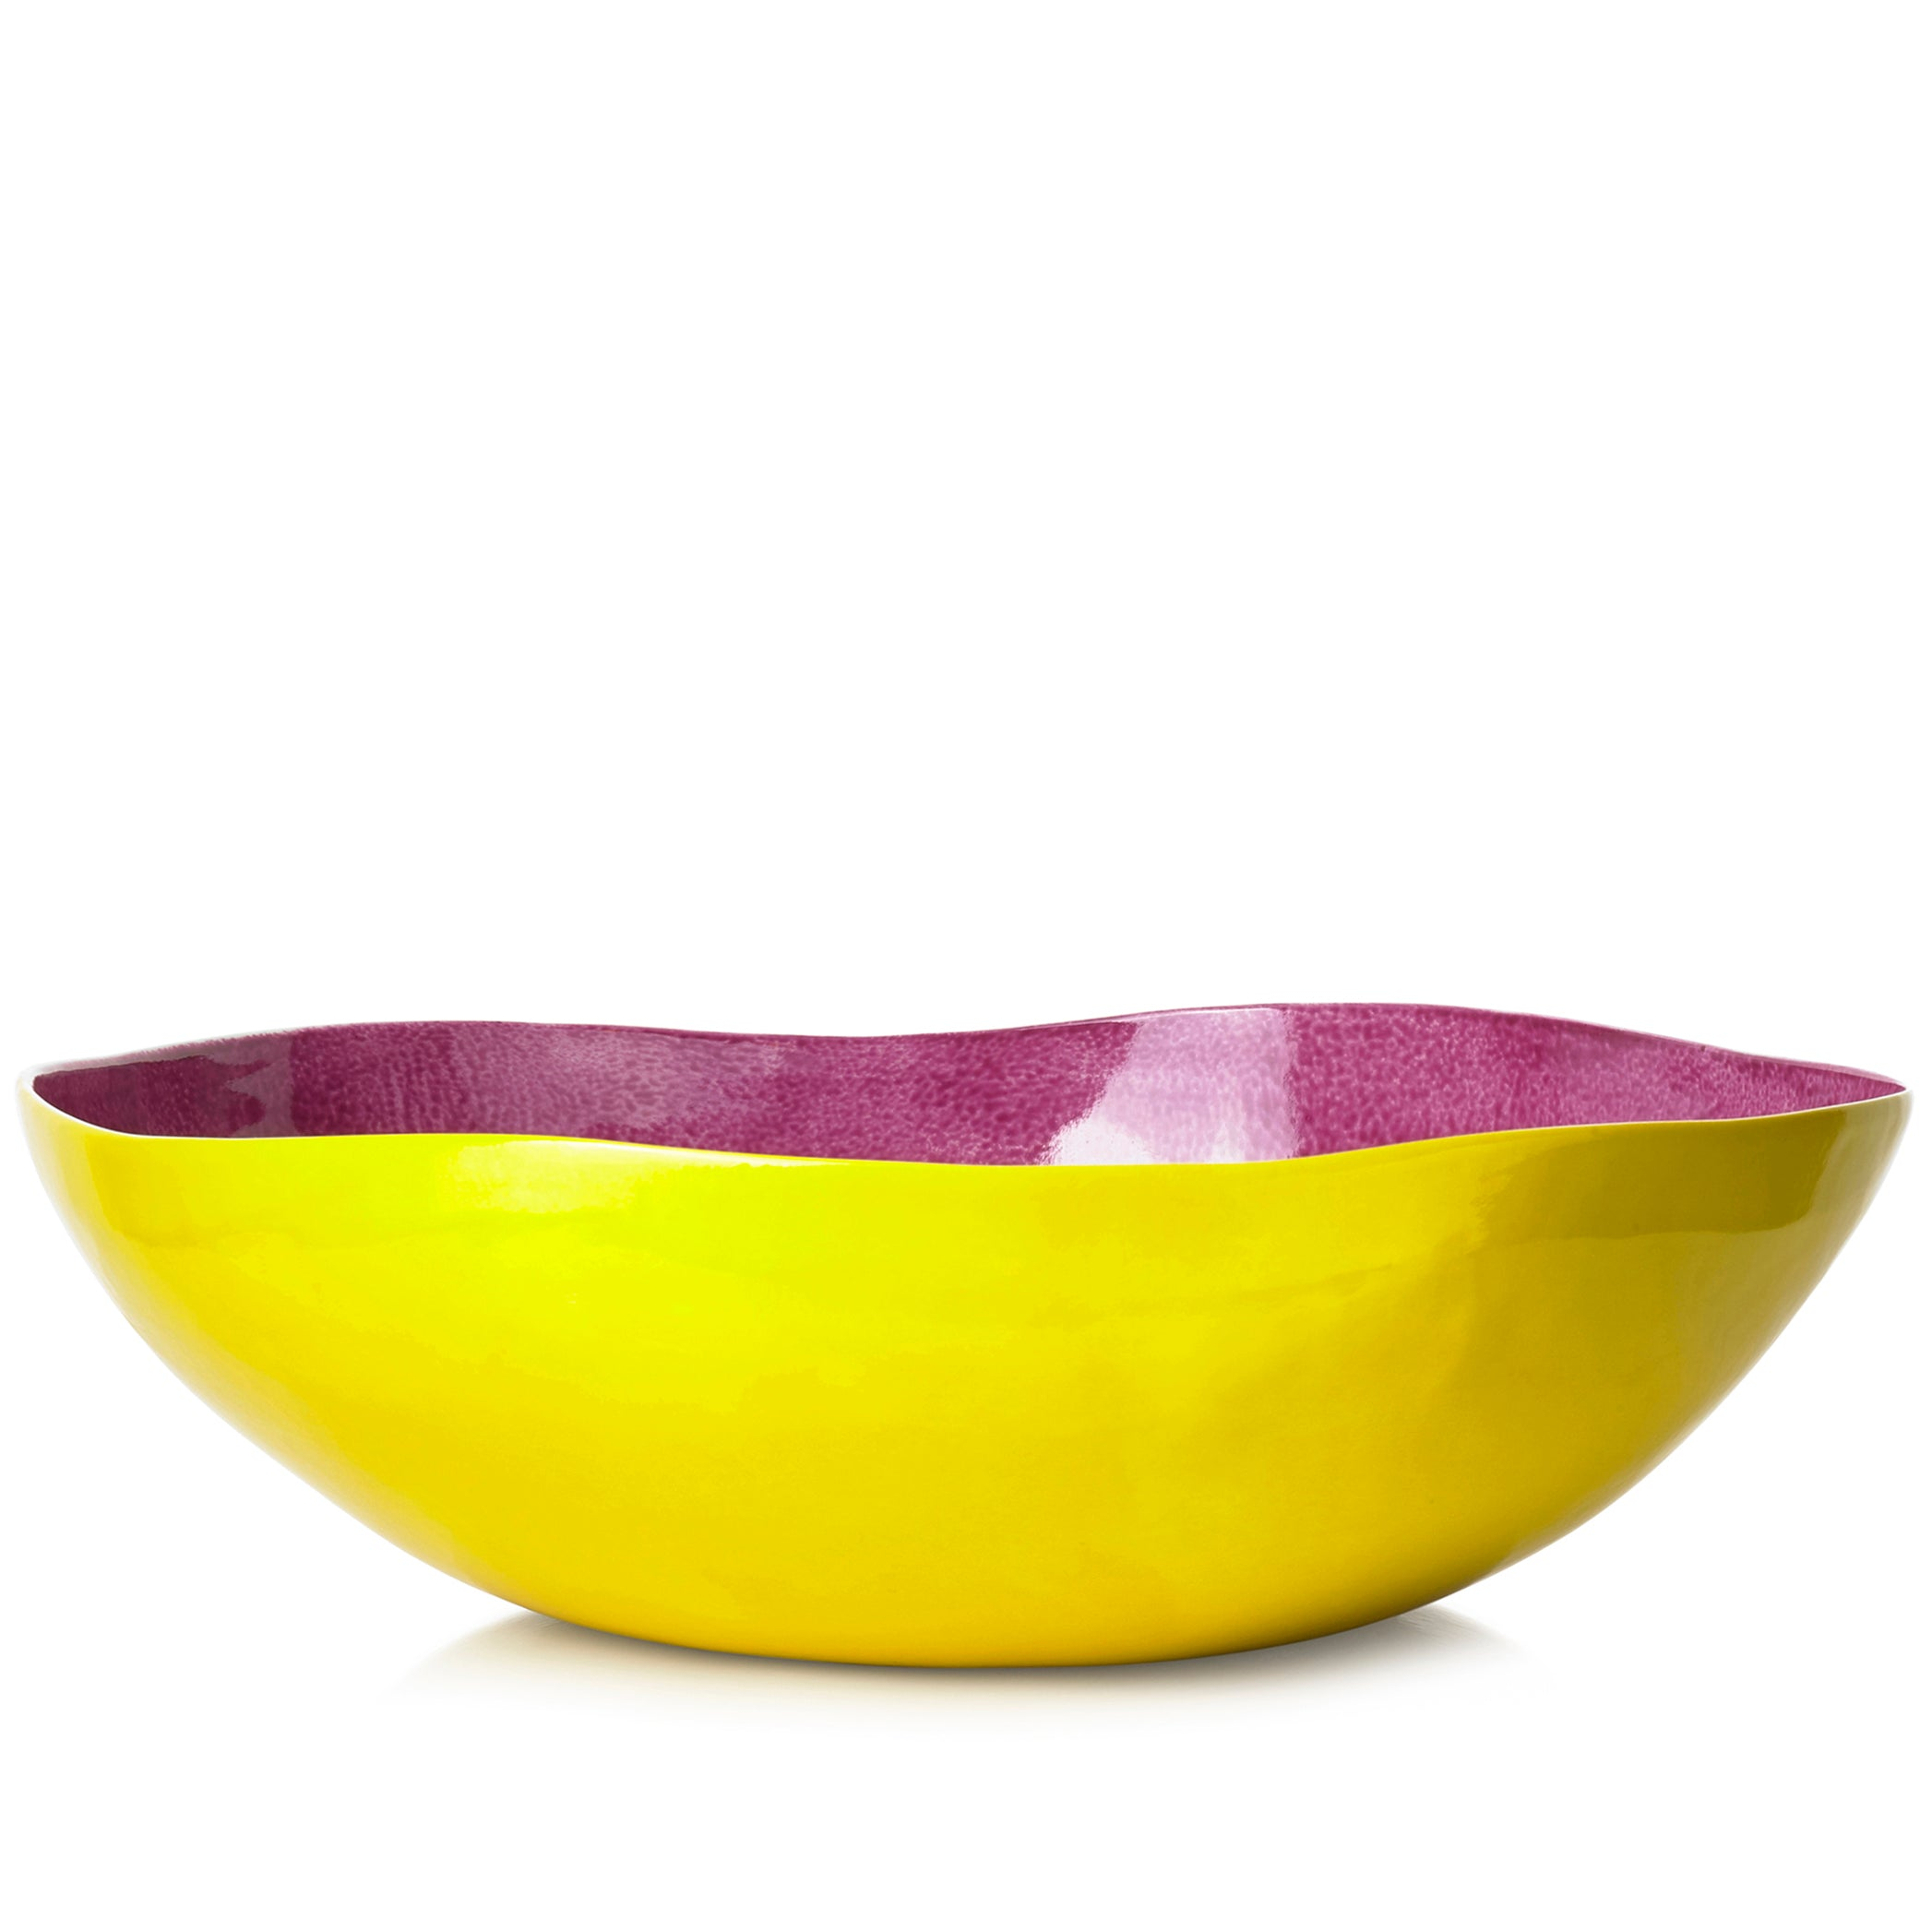 S&B Handmade 43cm Porcelain Extra Large Salad Bowl in Two Tone Pink and Yellow